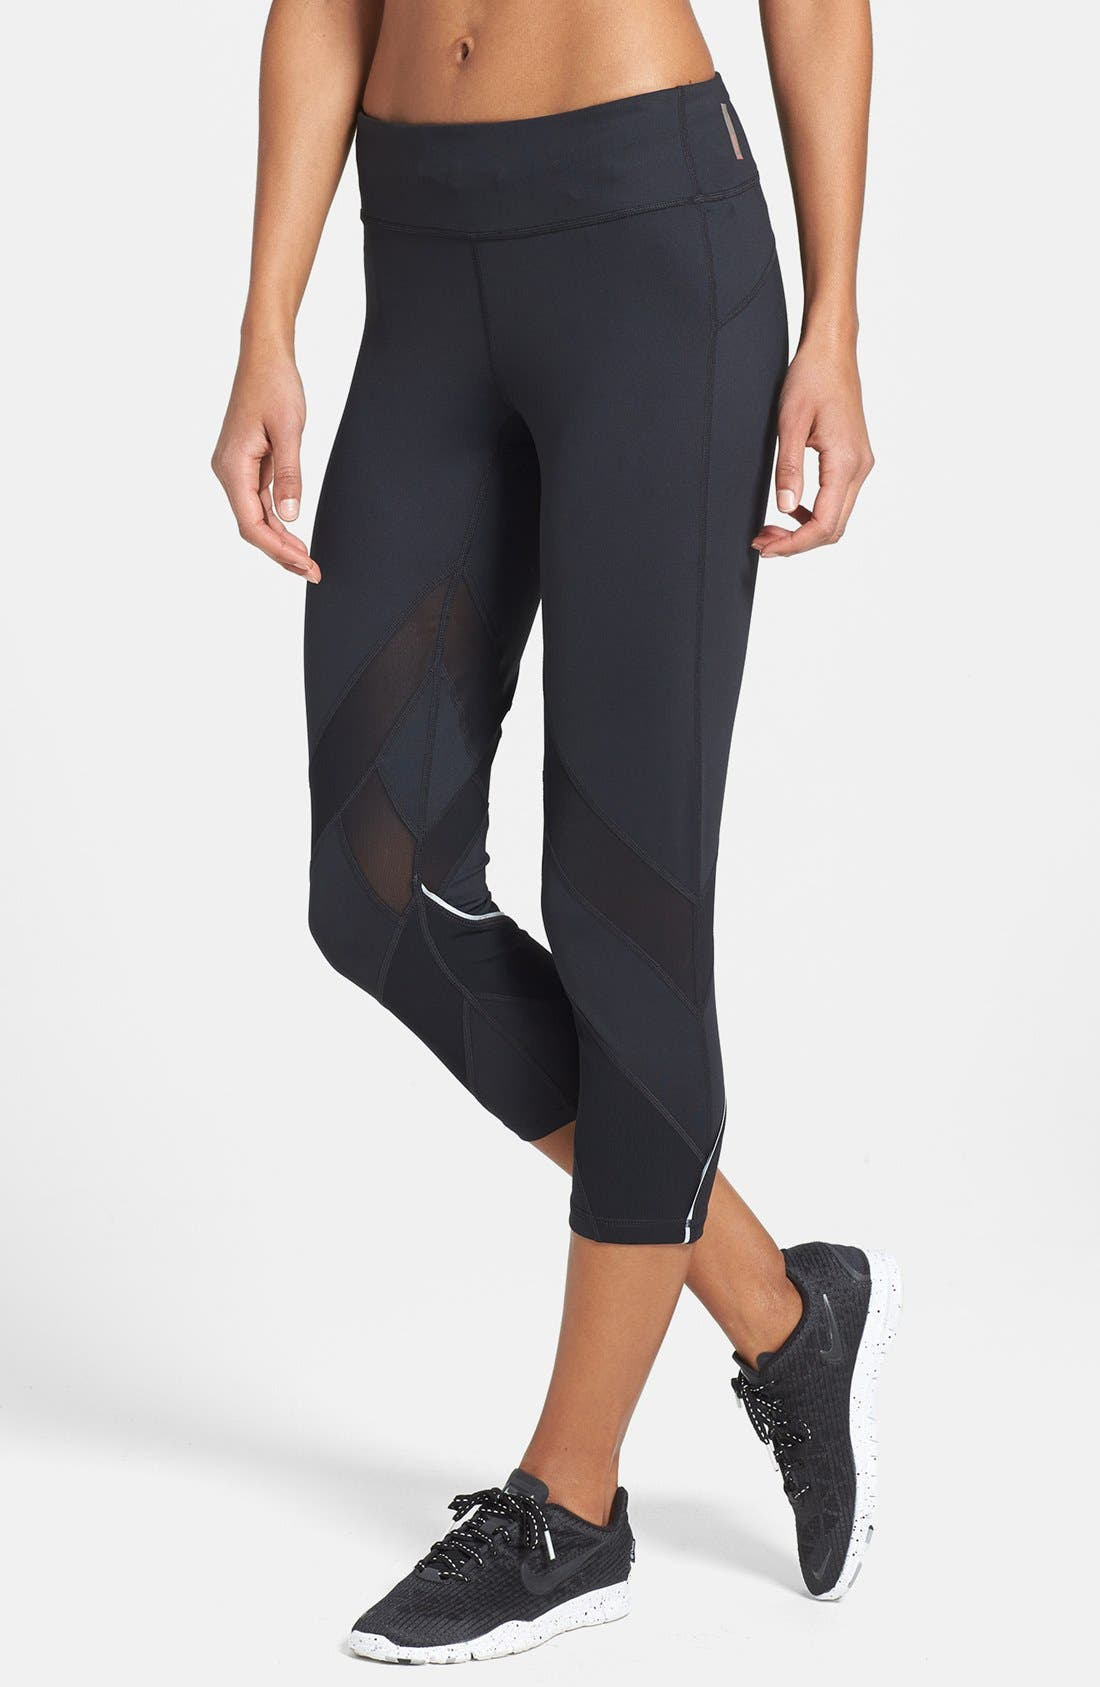 'Bees Knees' Slim Fit Running Capris,                             Main thumbnail 1, color,                             001